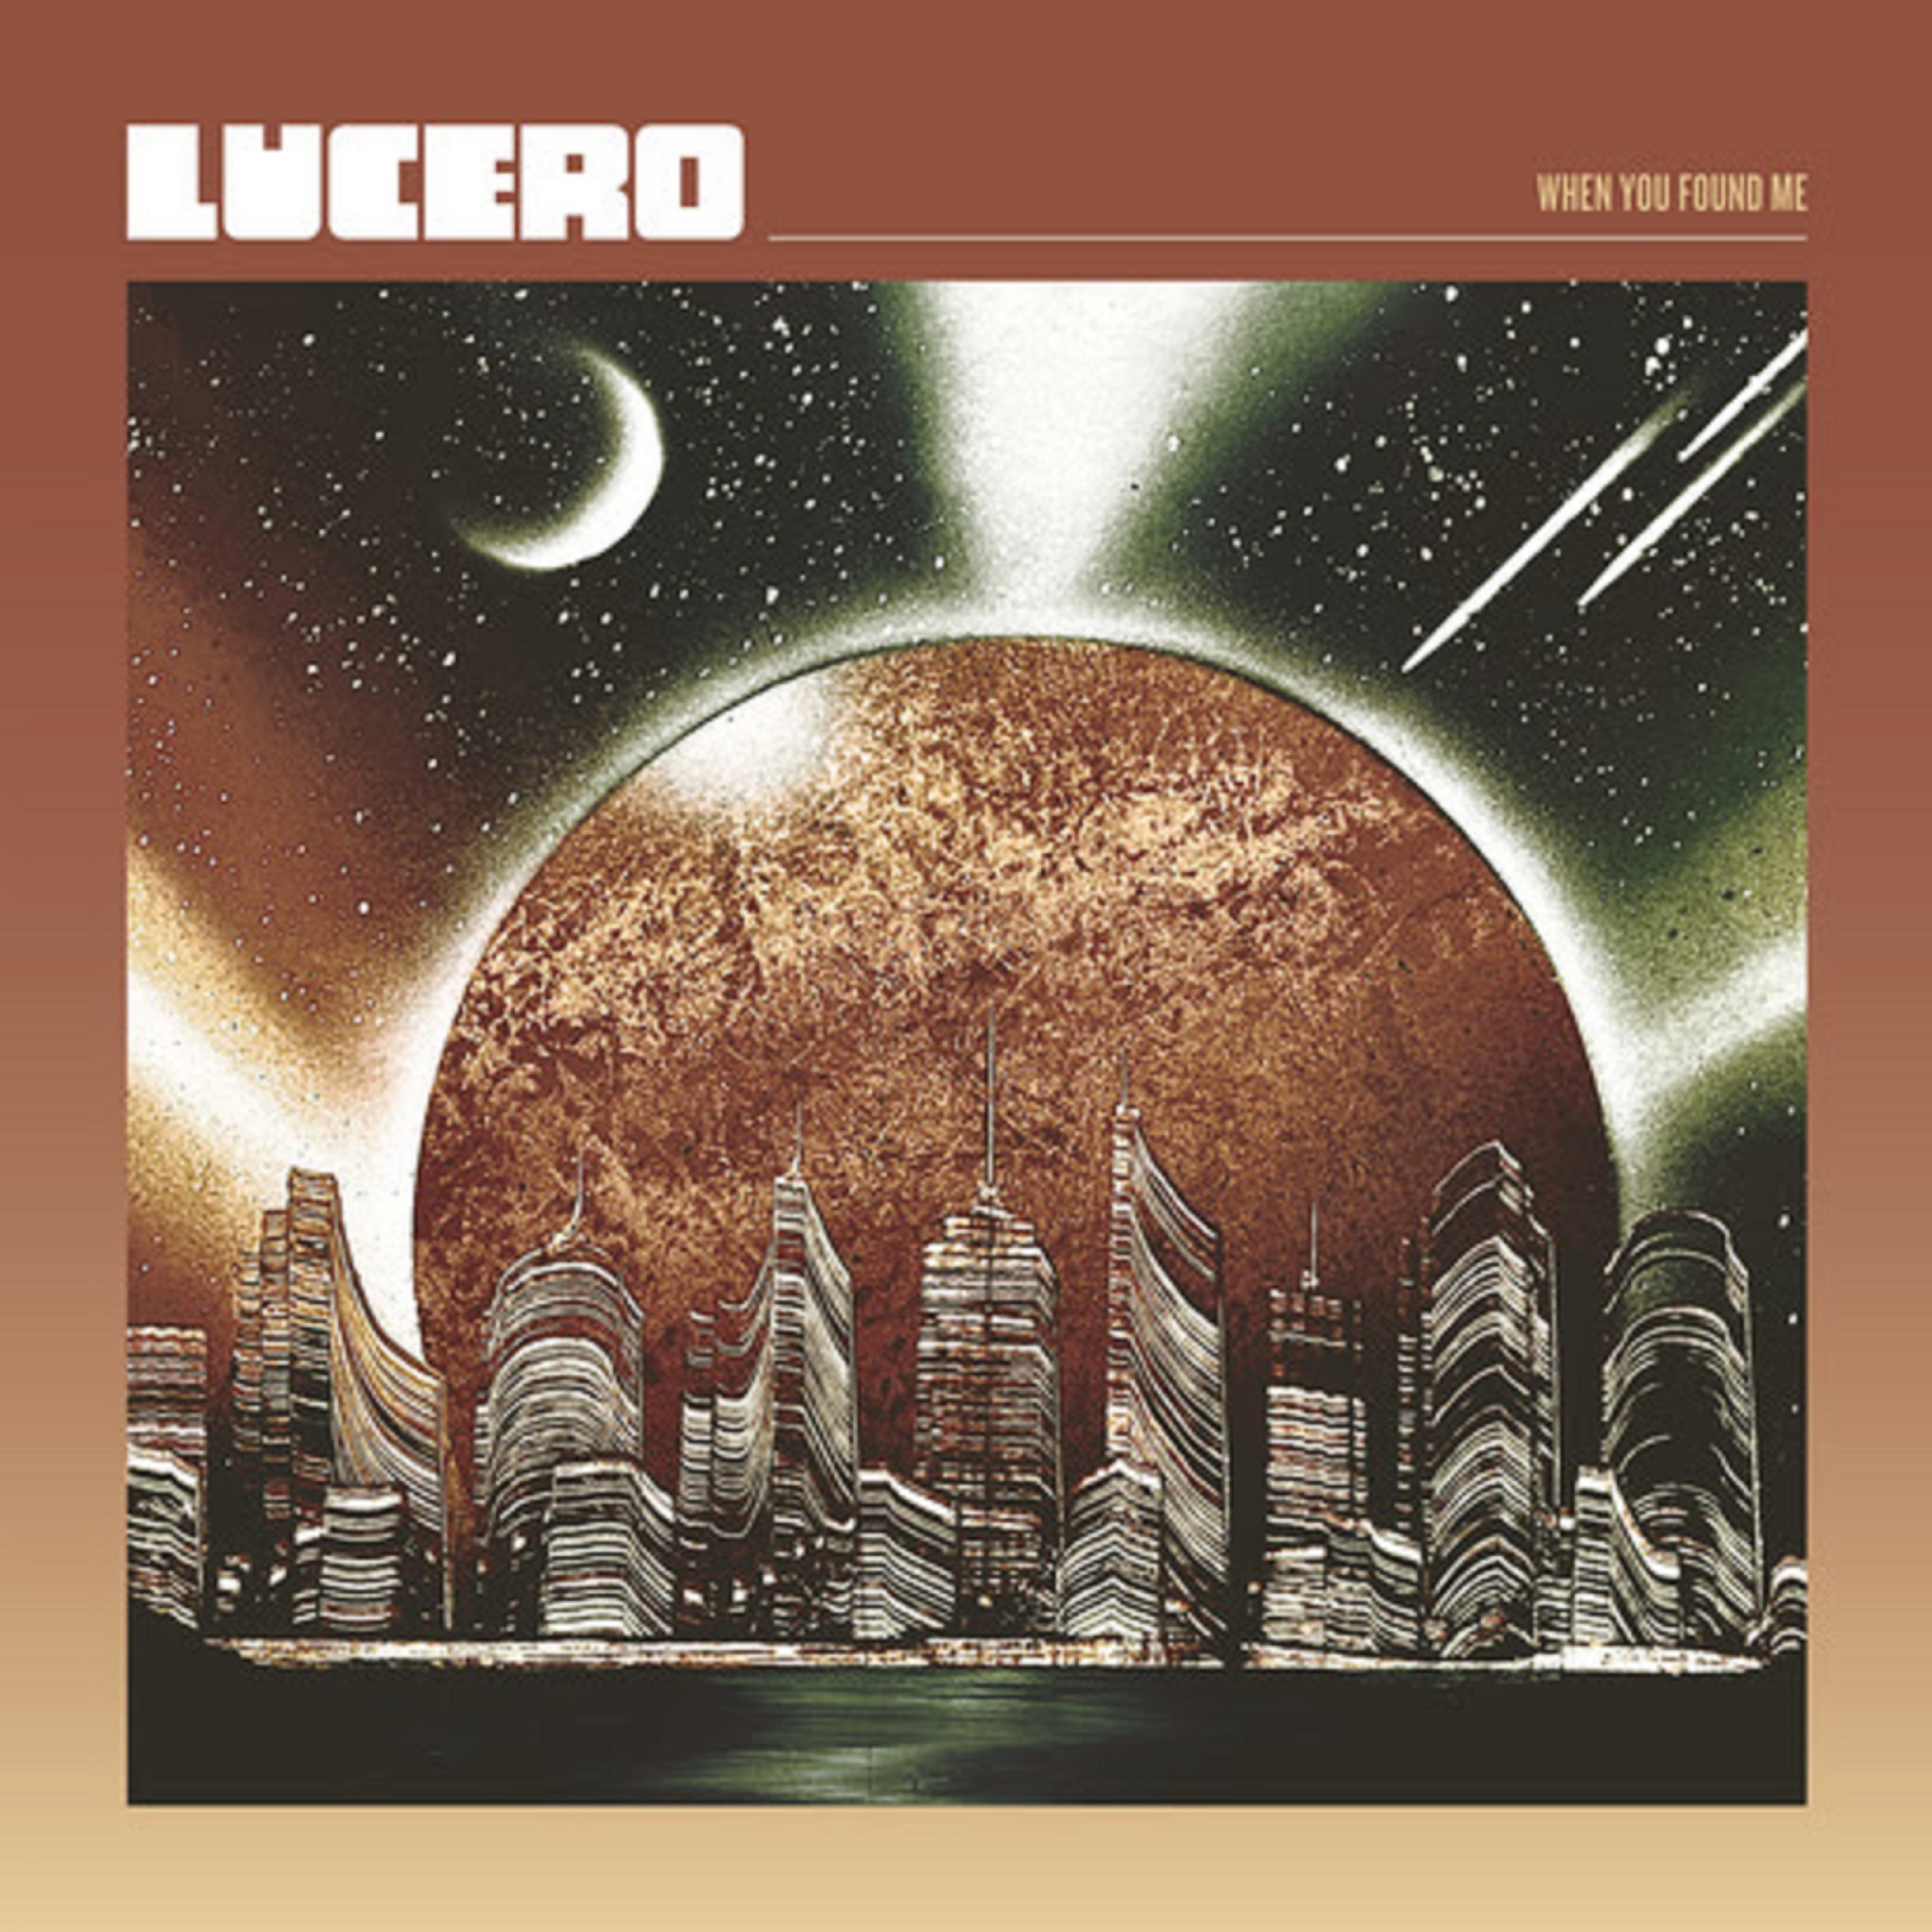 Lucero To Release When You Found Me January 29